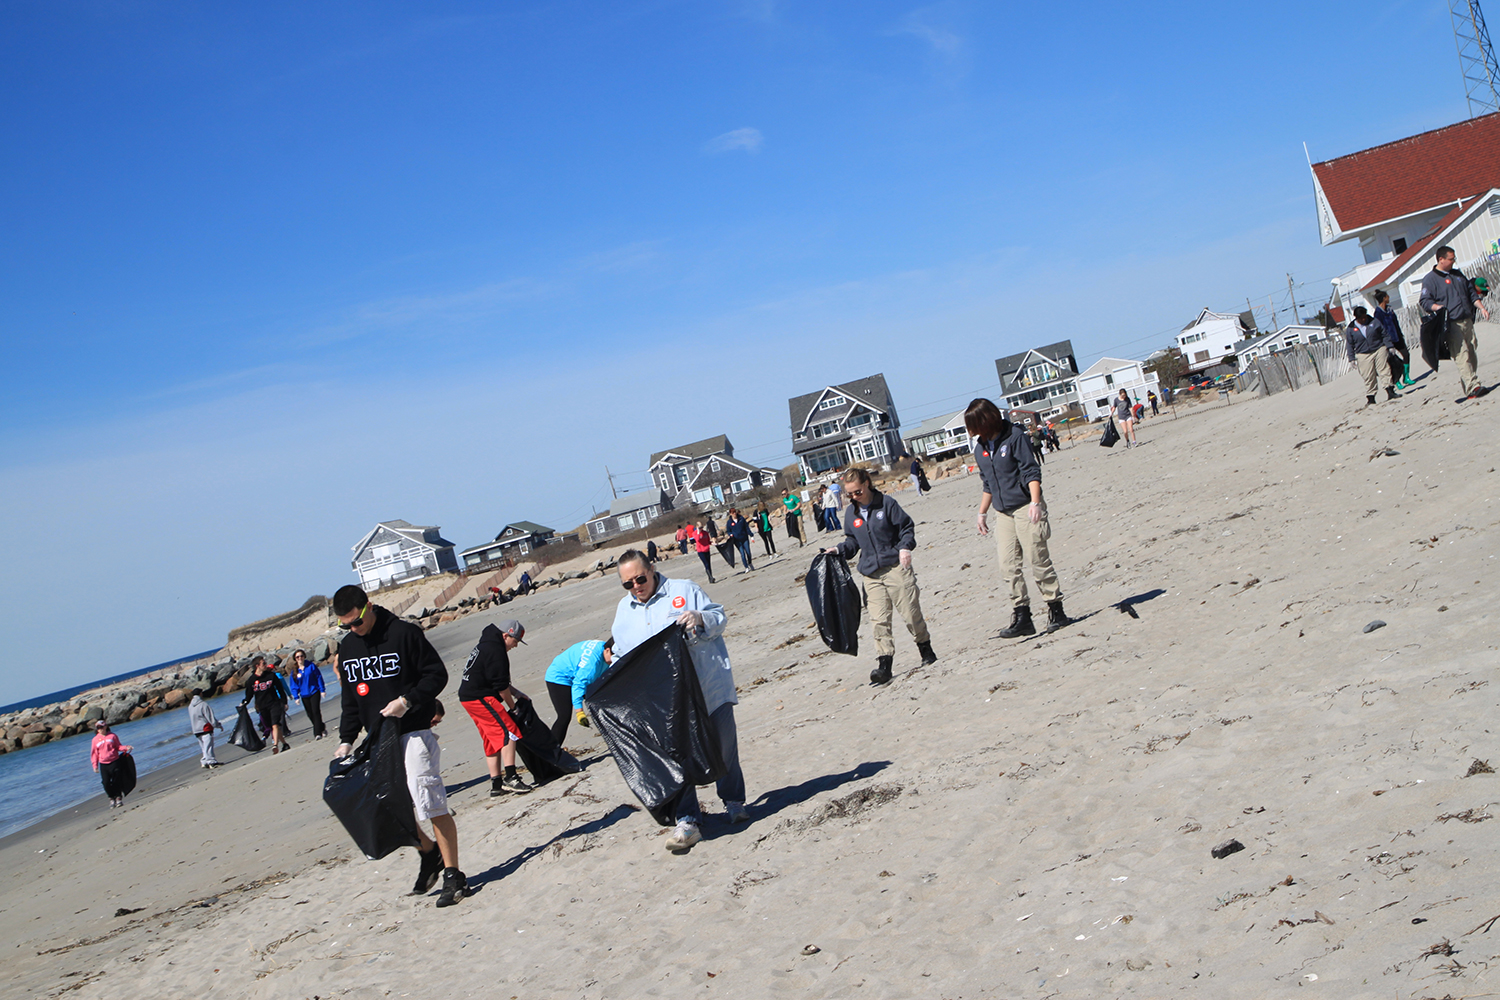 Dozens of volunteers helped Save The Bay pick up trash and litter at Salty Brine Beach in Narragansett during International Coastal Cleanup Day.